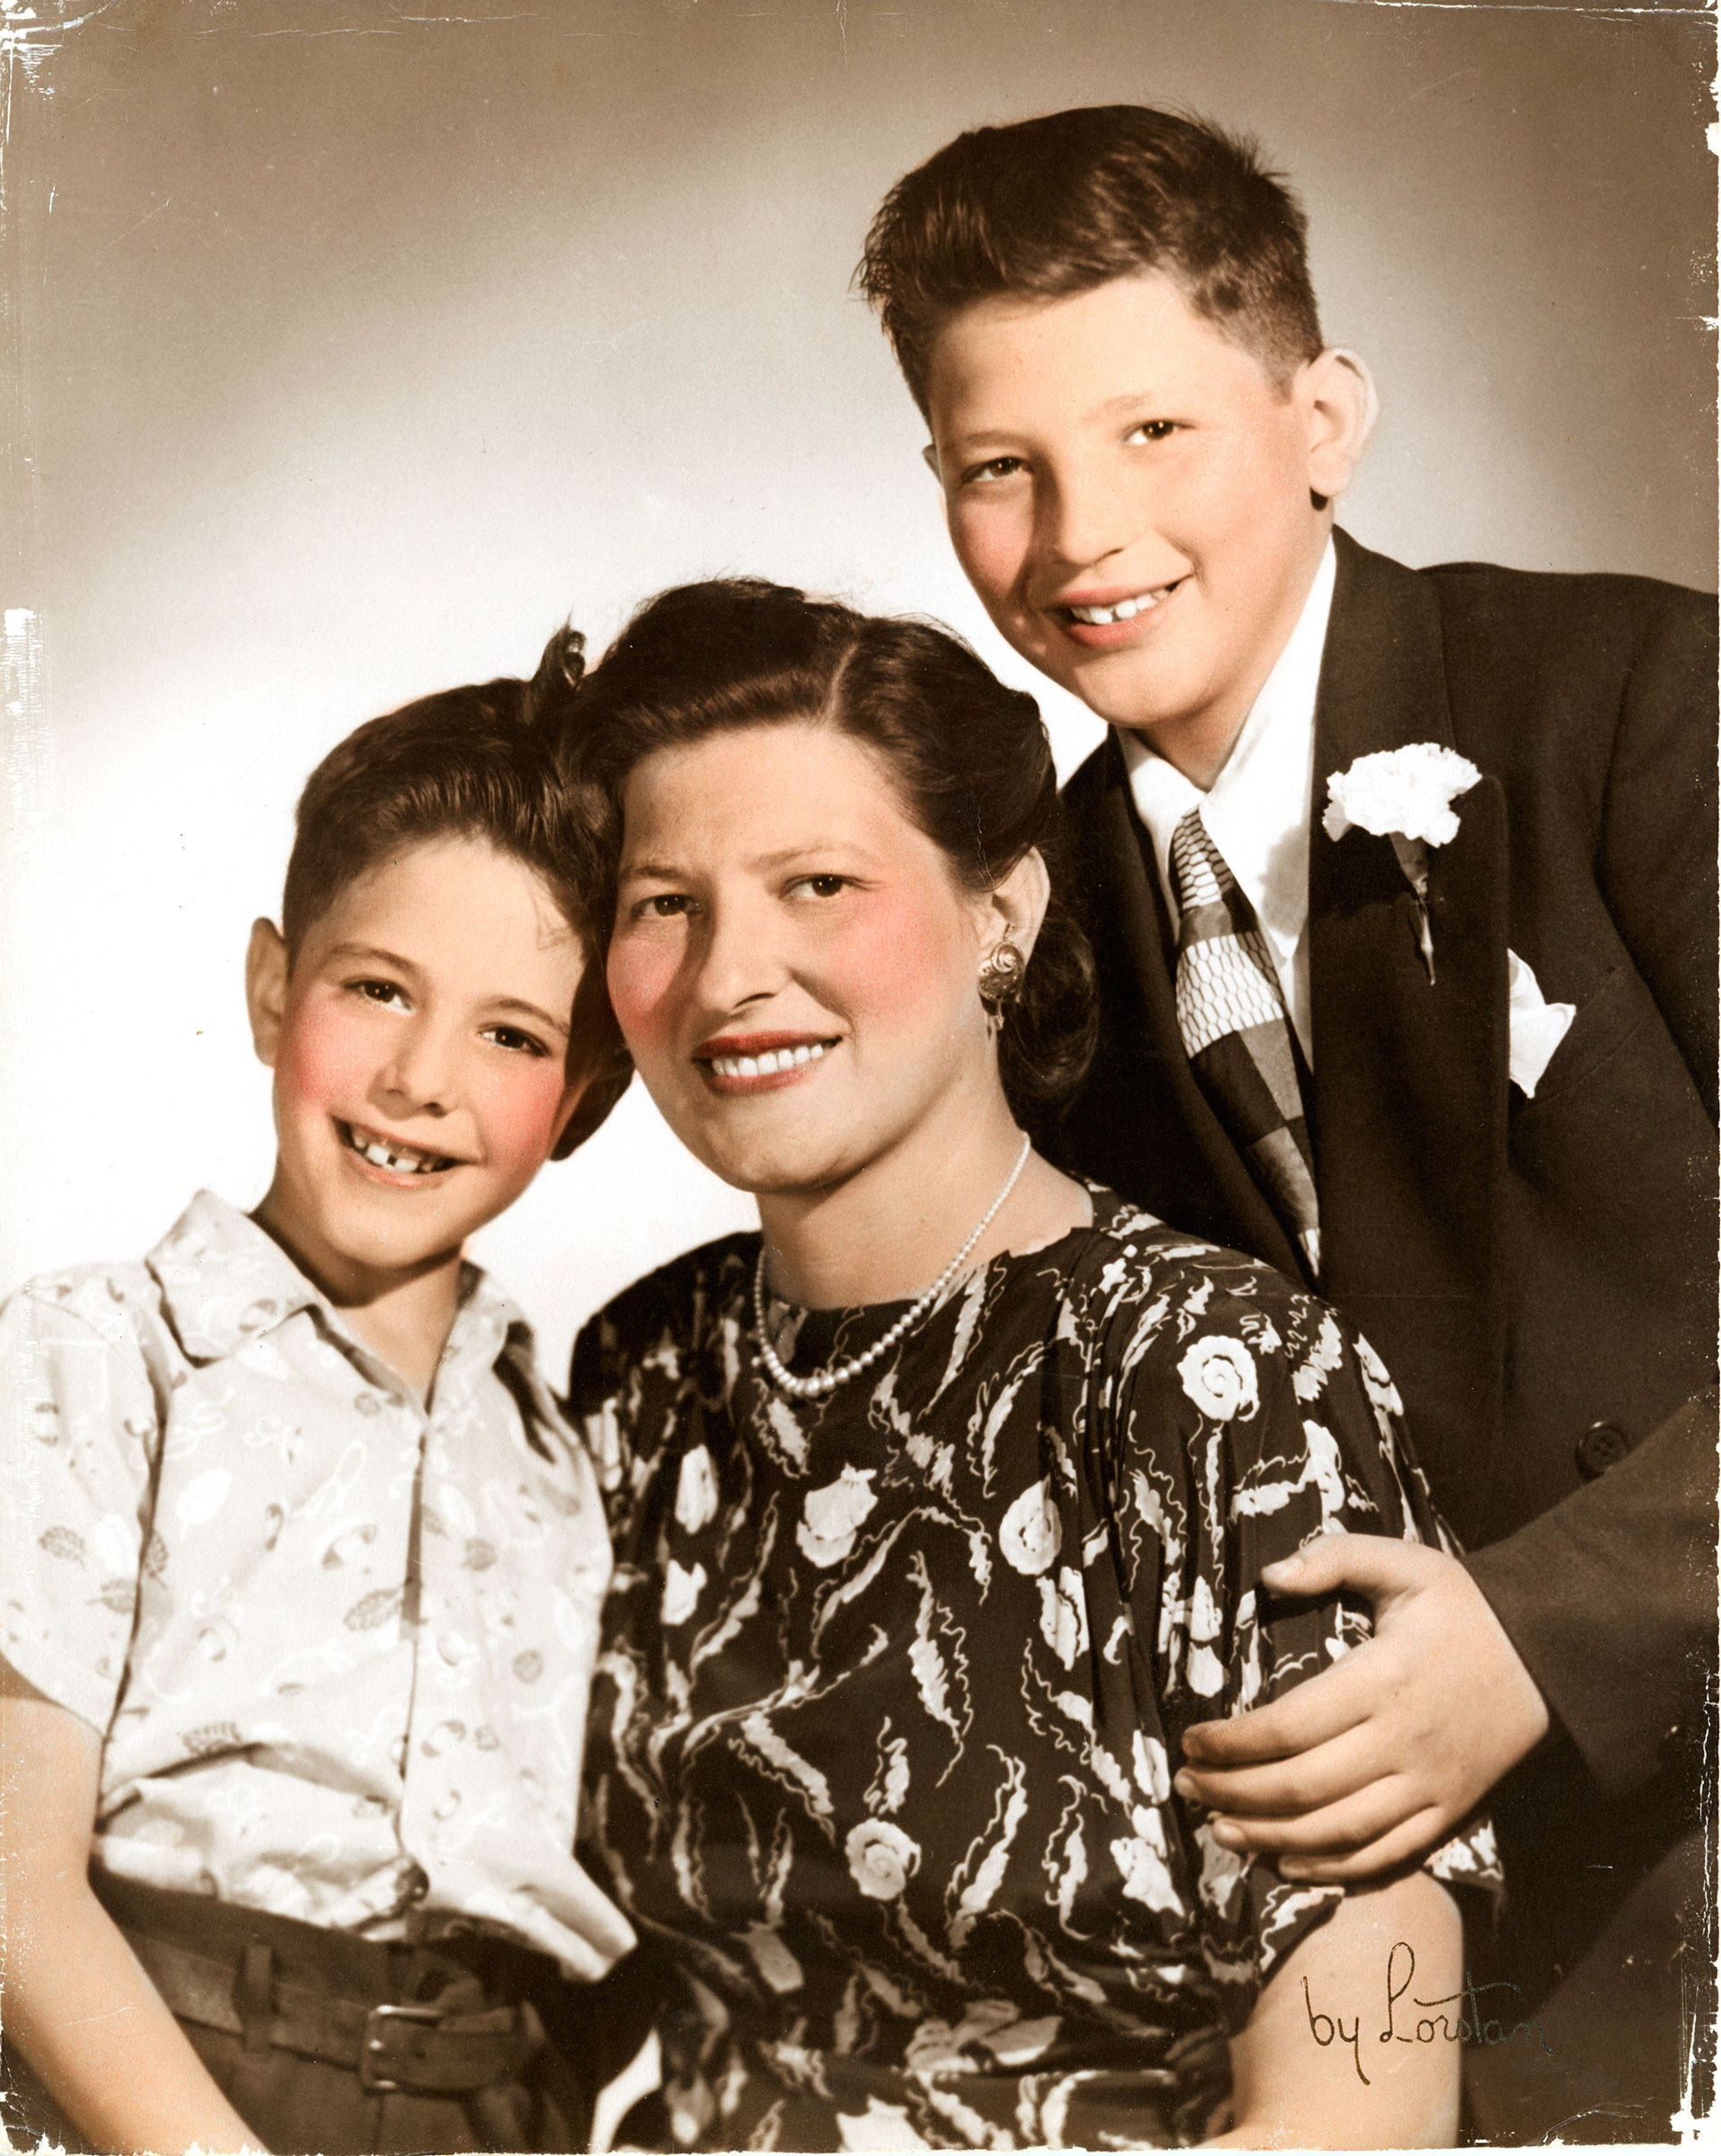 Senator Bernie Sanders with his mother and older brother